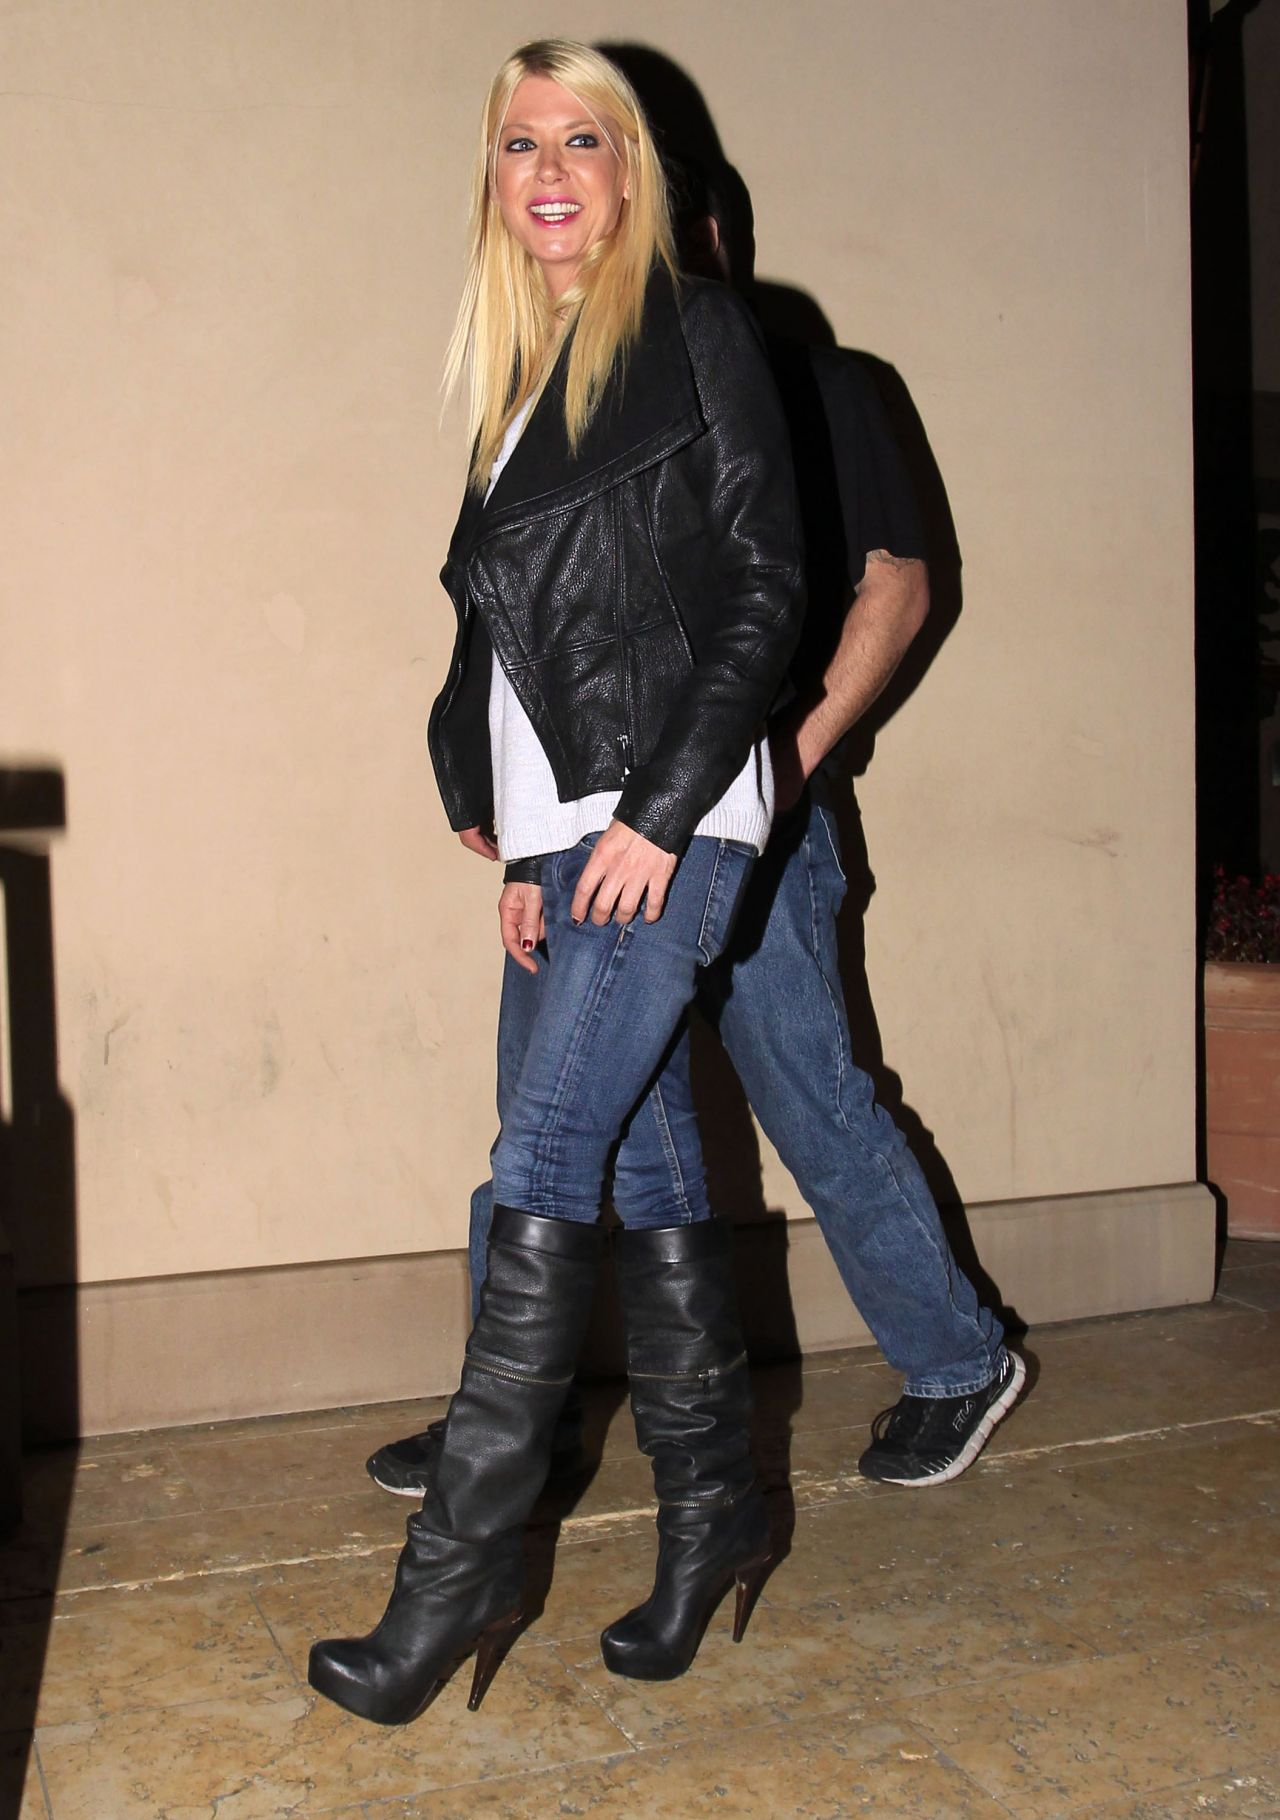 Tara Reid In Jeans And Knee High Boots At Bouchon In Beverly Hills January 2016